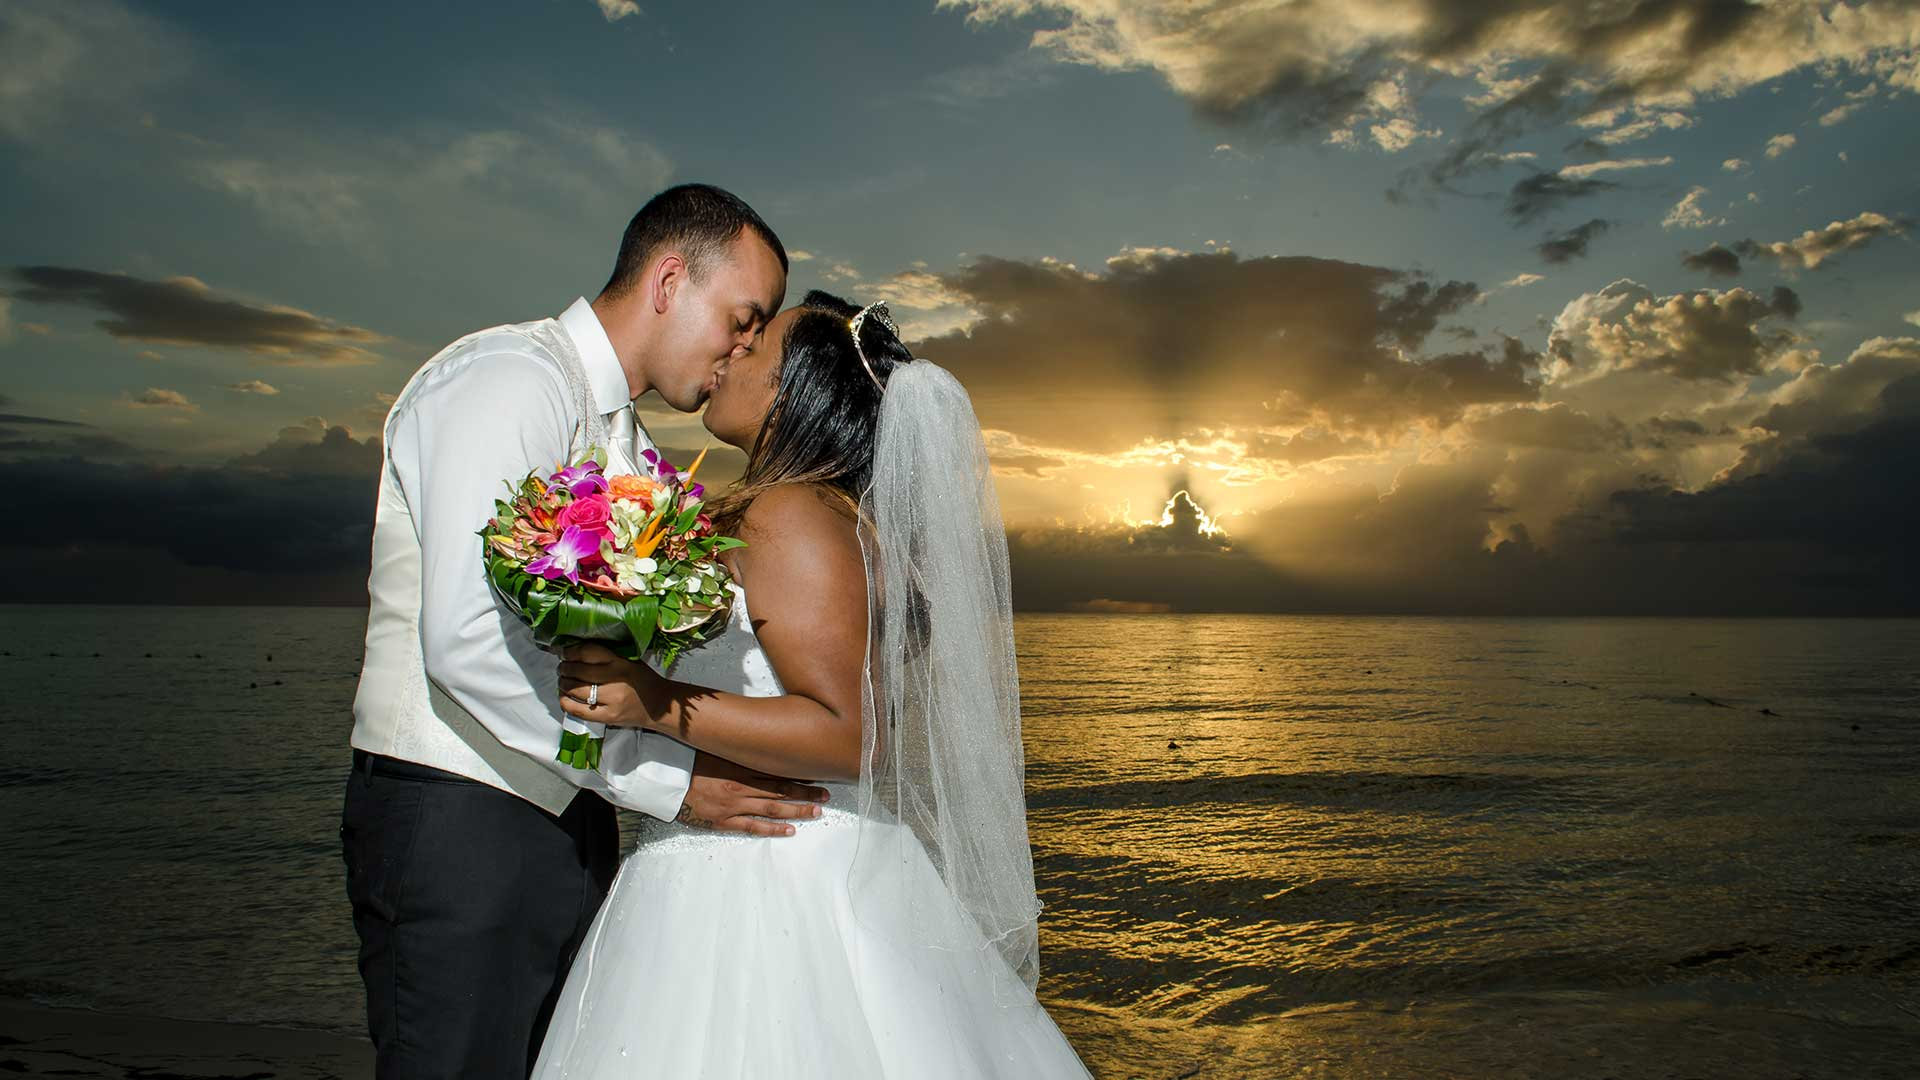 faithful wedding services in negril